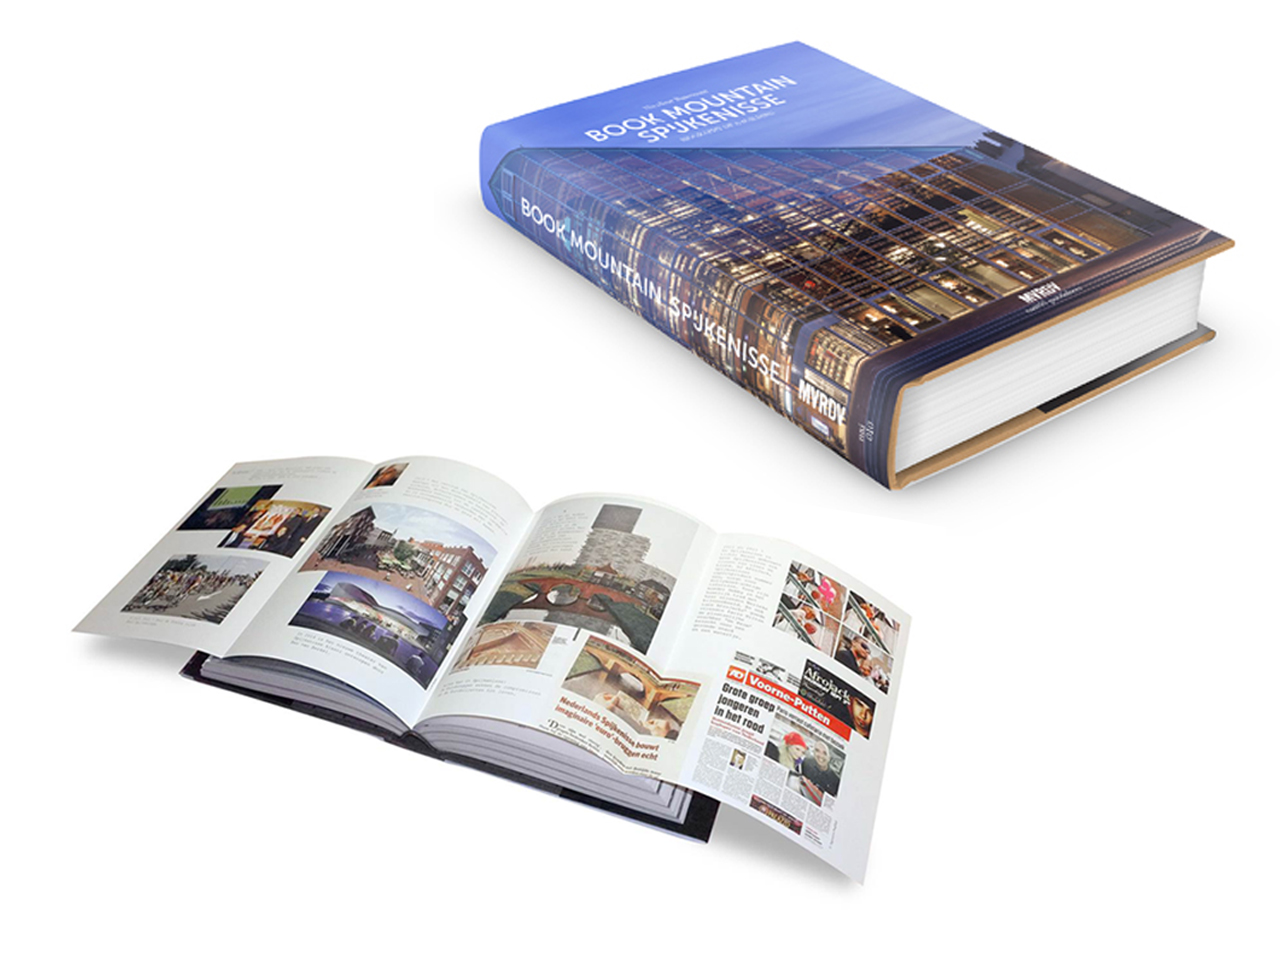 MVRDV's new publication 'Book Mountain Spijkenisse - Biography of a Building' is released today